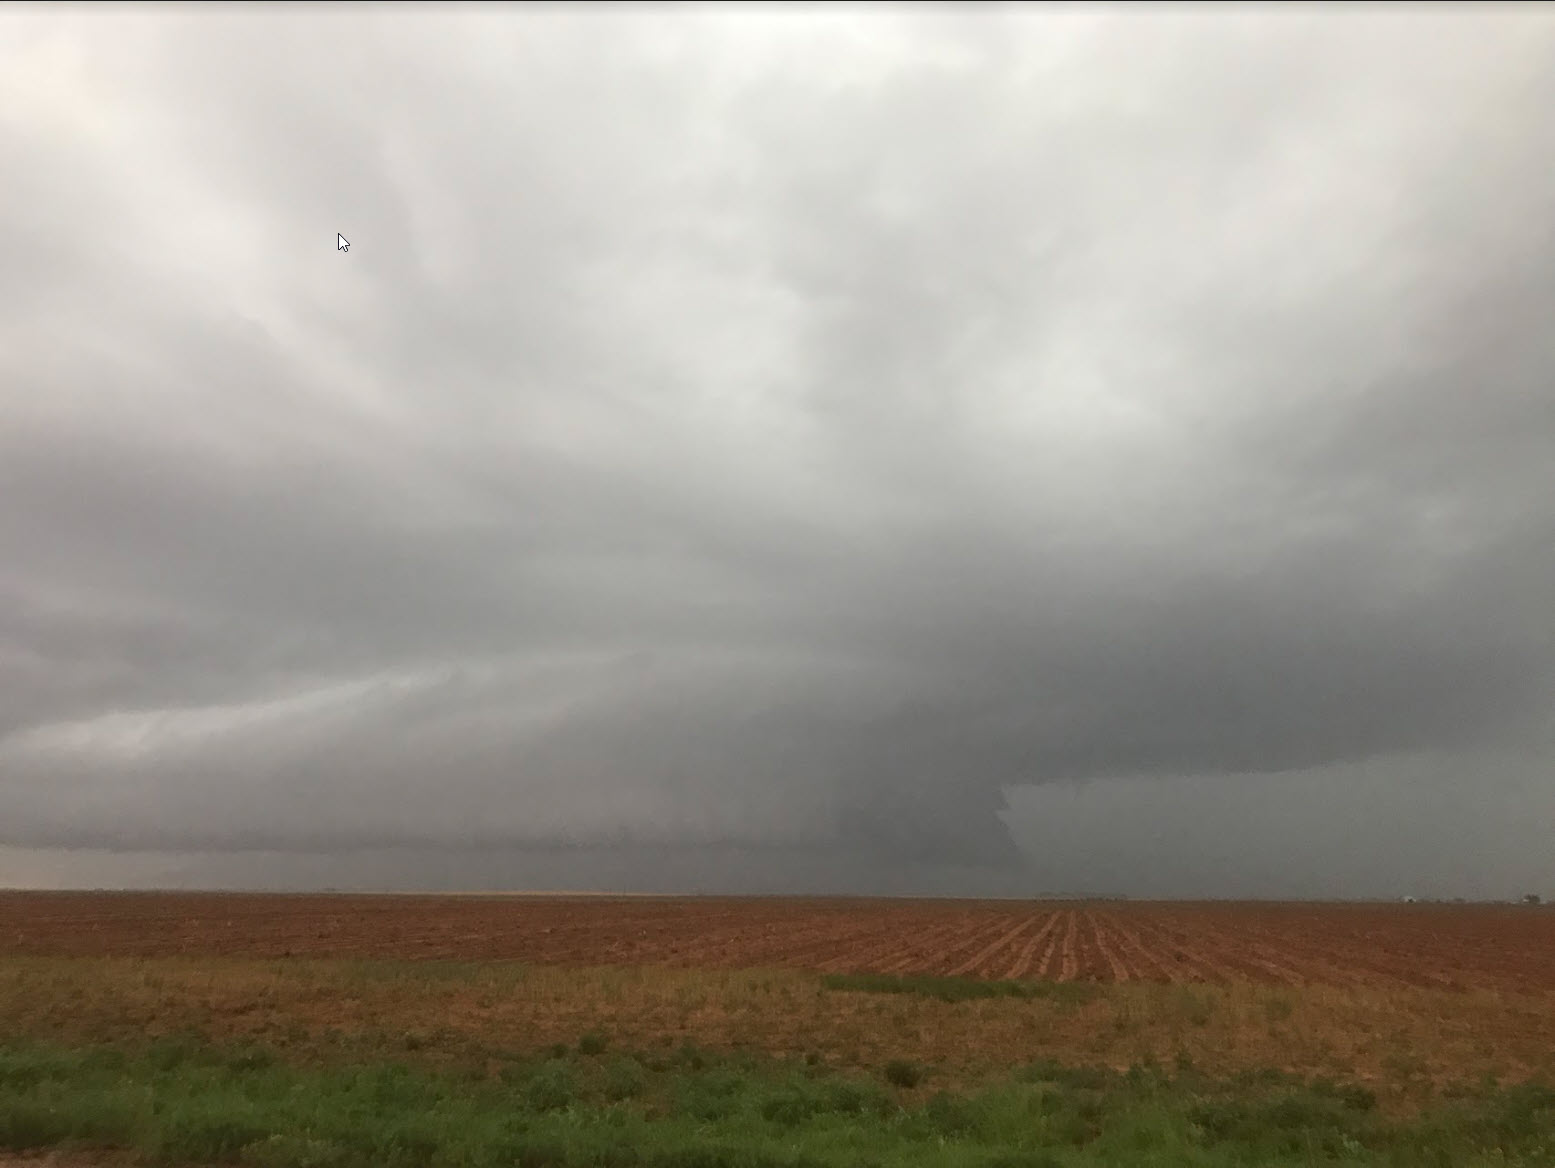 Moisture-rich severe storm over western Cochran County Sunday evening (30 May 2021). The picture is courtesy of Bruce Haynie.